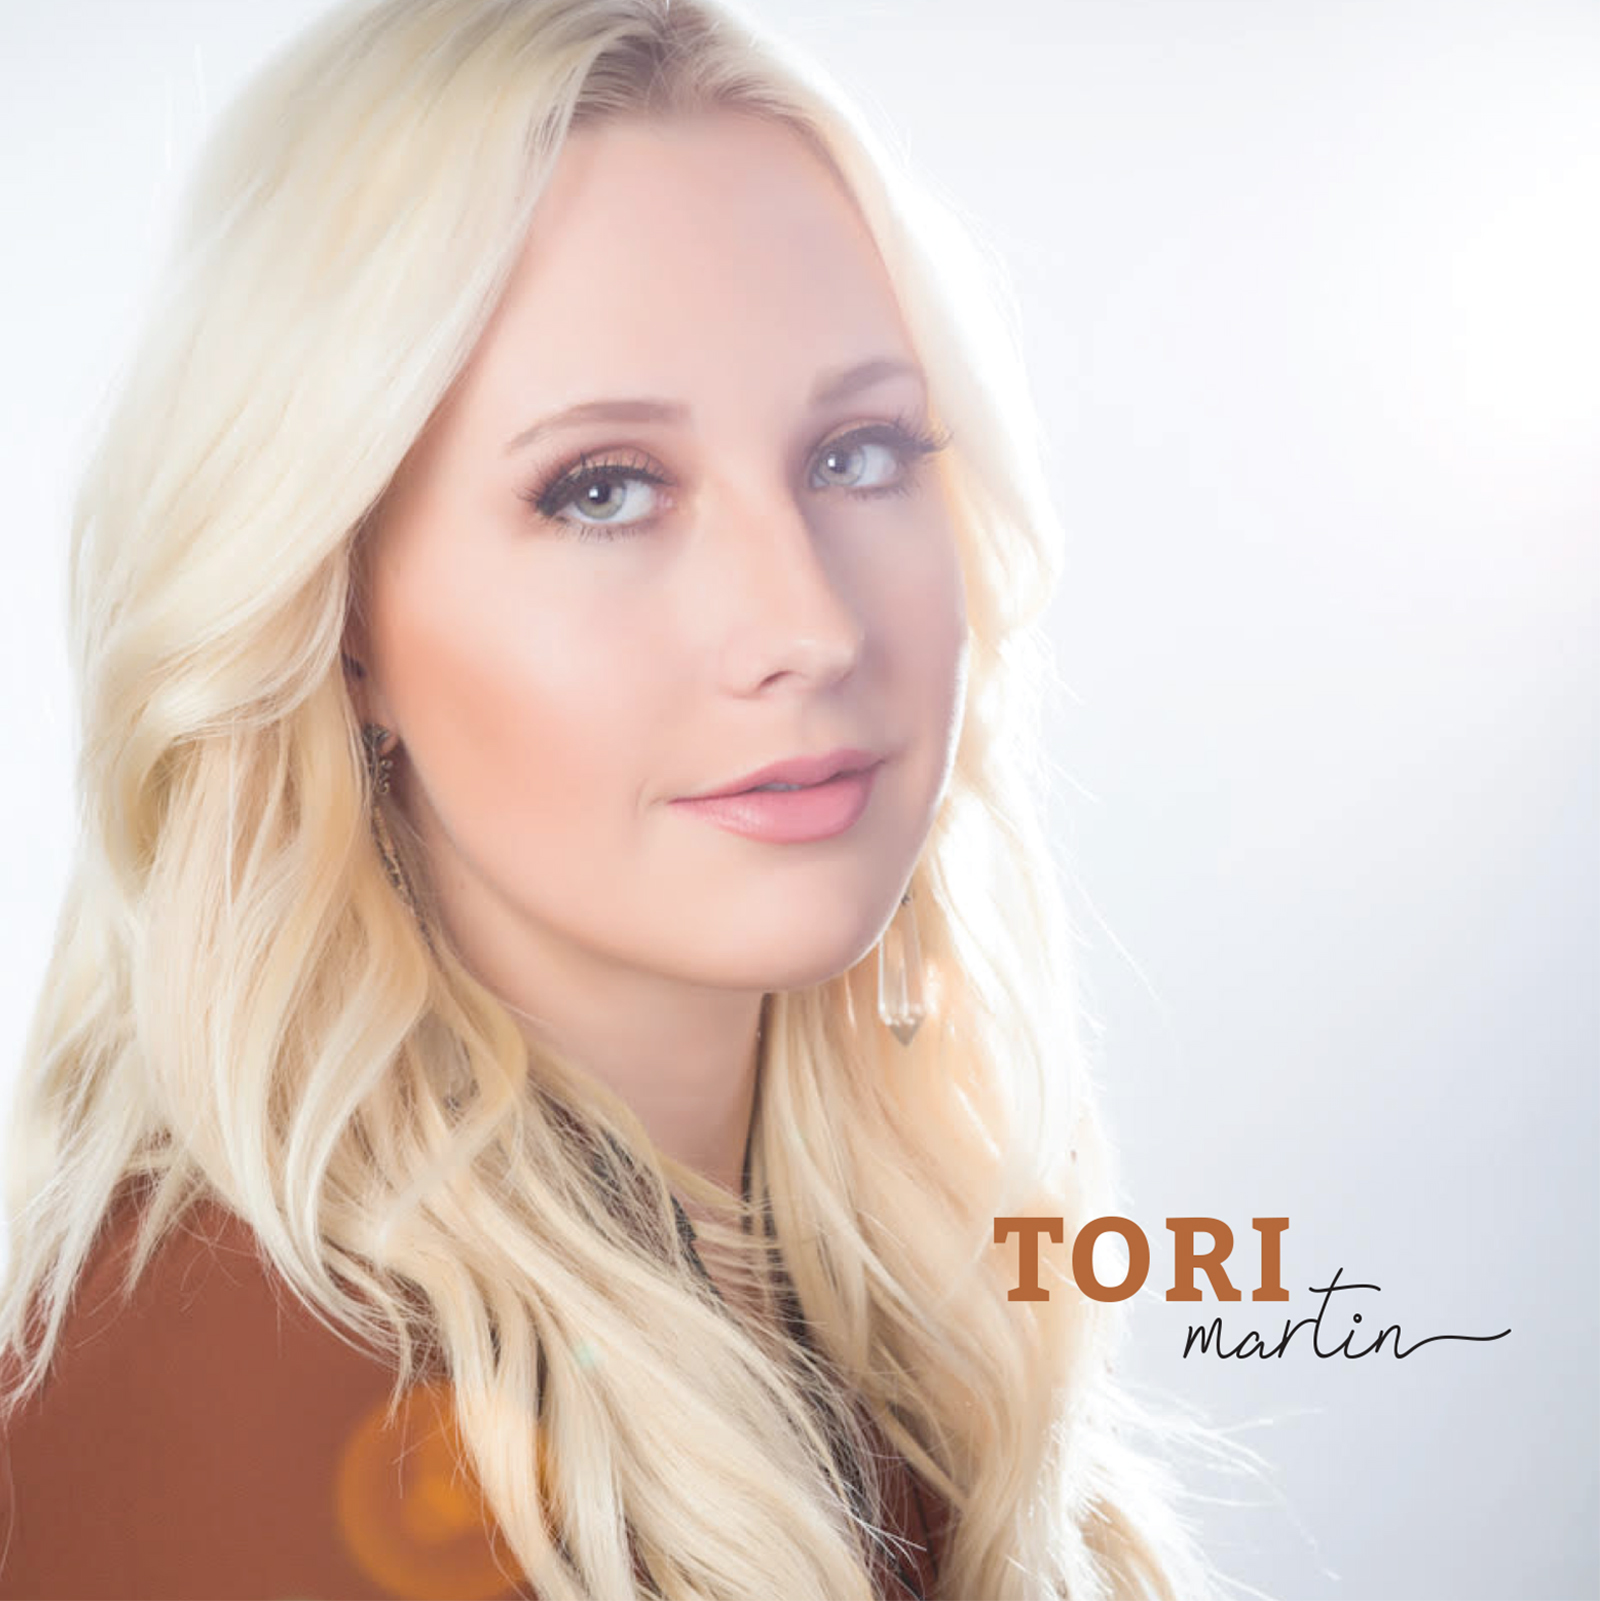 EP:Tori Martin - 2017The warm light of sun breaks through the clouds with these country-pop songs. A 'Caged Bird' who has had 'Enough' is finally free to soar. And as she learns 'Day By Day' not to get bogged down in the 'Quicksand' she goes 'Coastin' through life, falling in love, and she has 'Never Looked Back'.The songs on this project are about finding love, and finding yourself - coming of age - opening your eyes and seeing what is around you. Musically it is an EP with lots of good melodies that are fun to sing. It's a good example of an artist finding their voice and wrapping it around songs that fit.